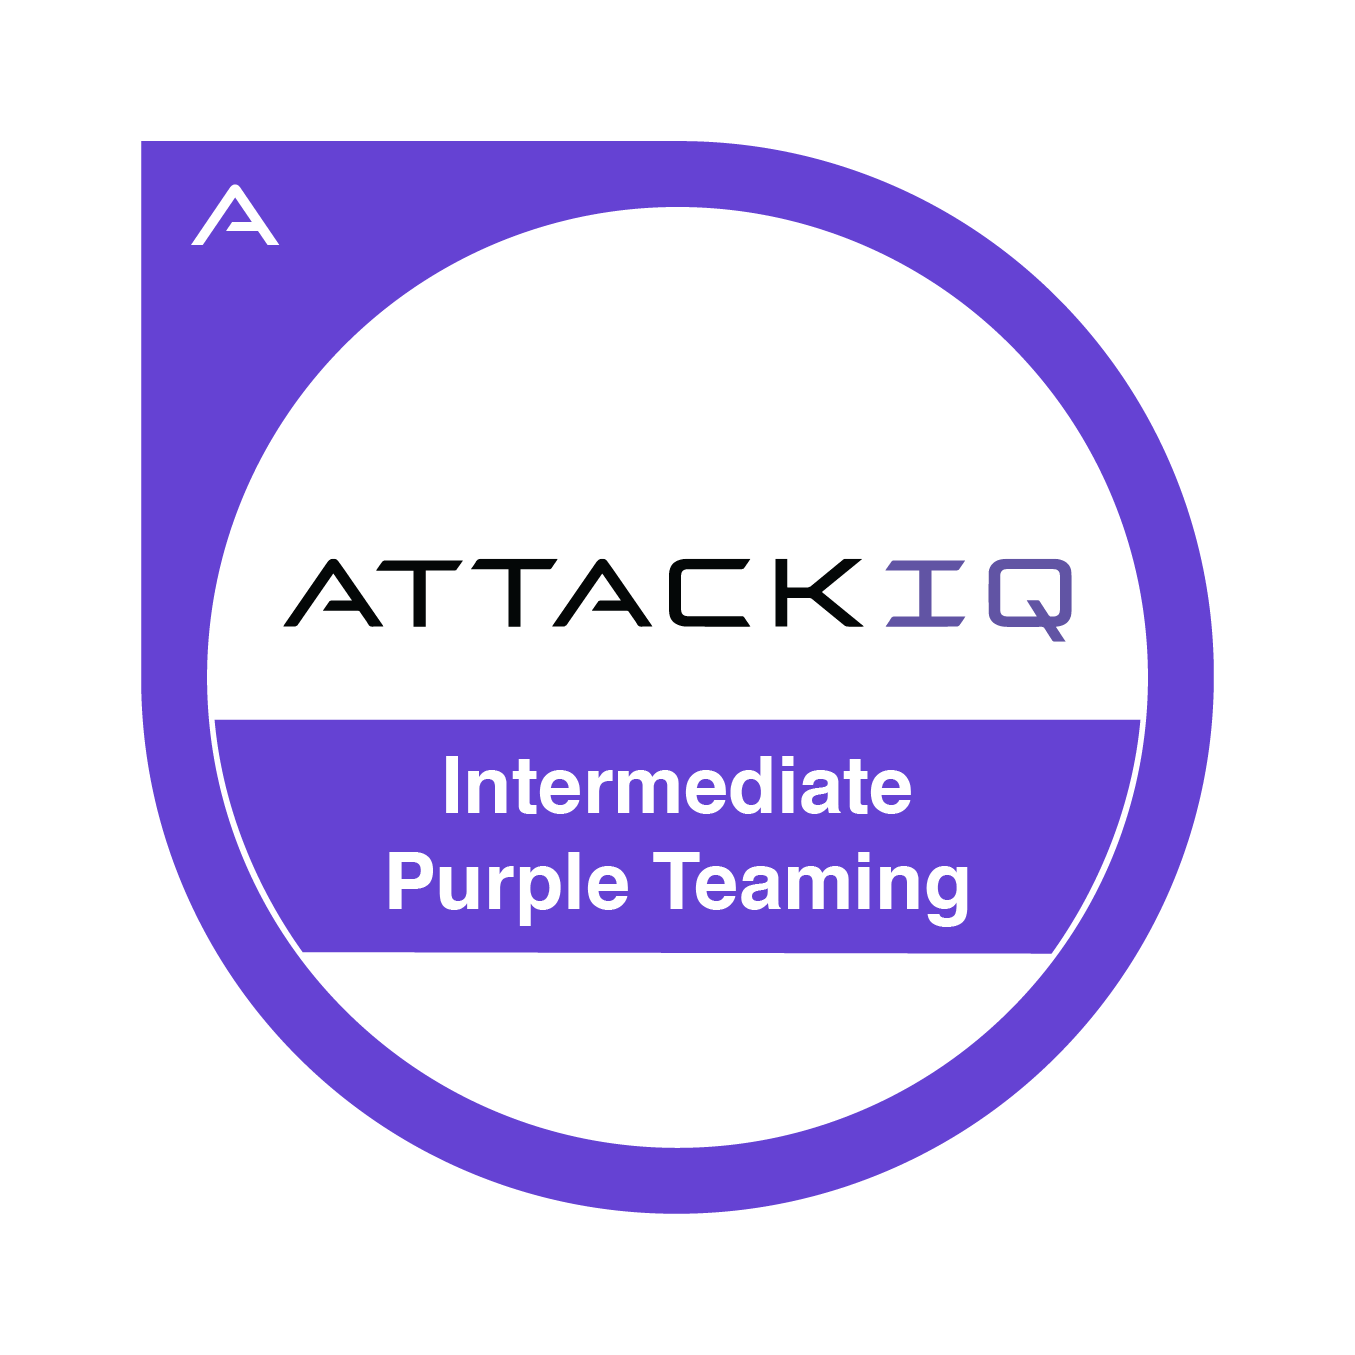 Intermediate Purple Teaming